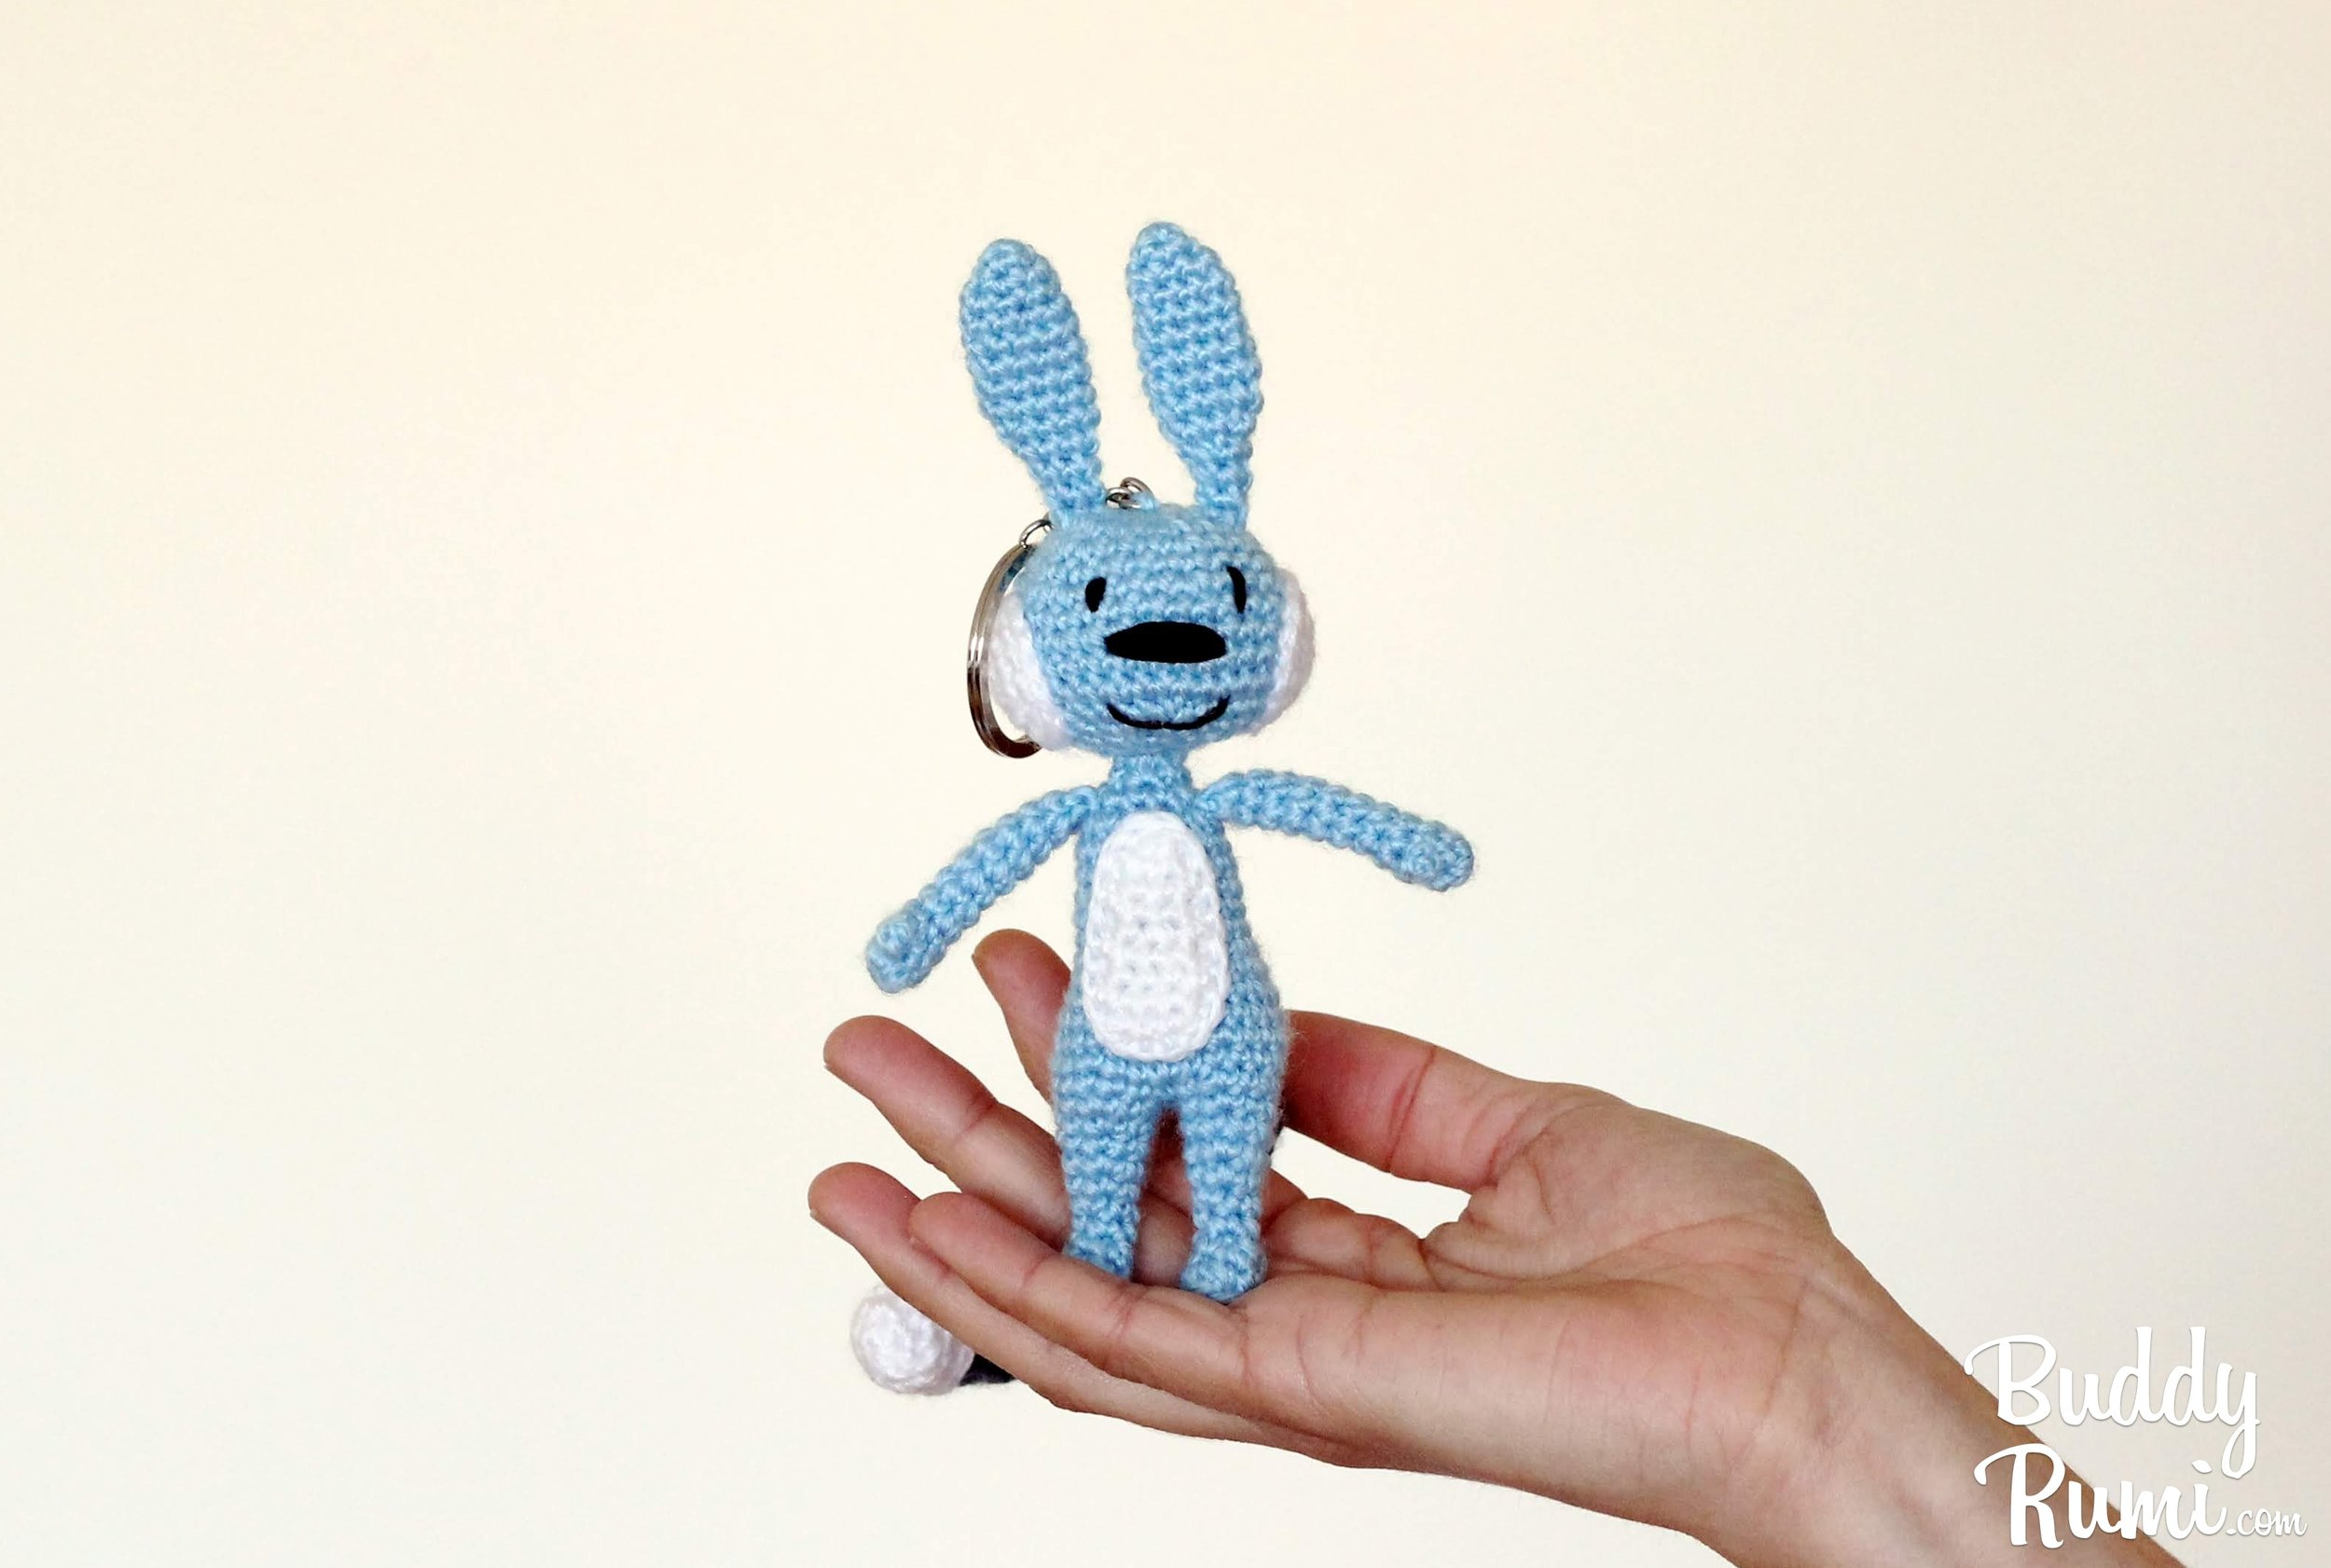 Blue amigurumi rabbit pattern